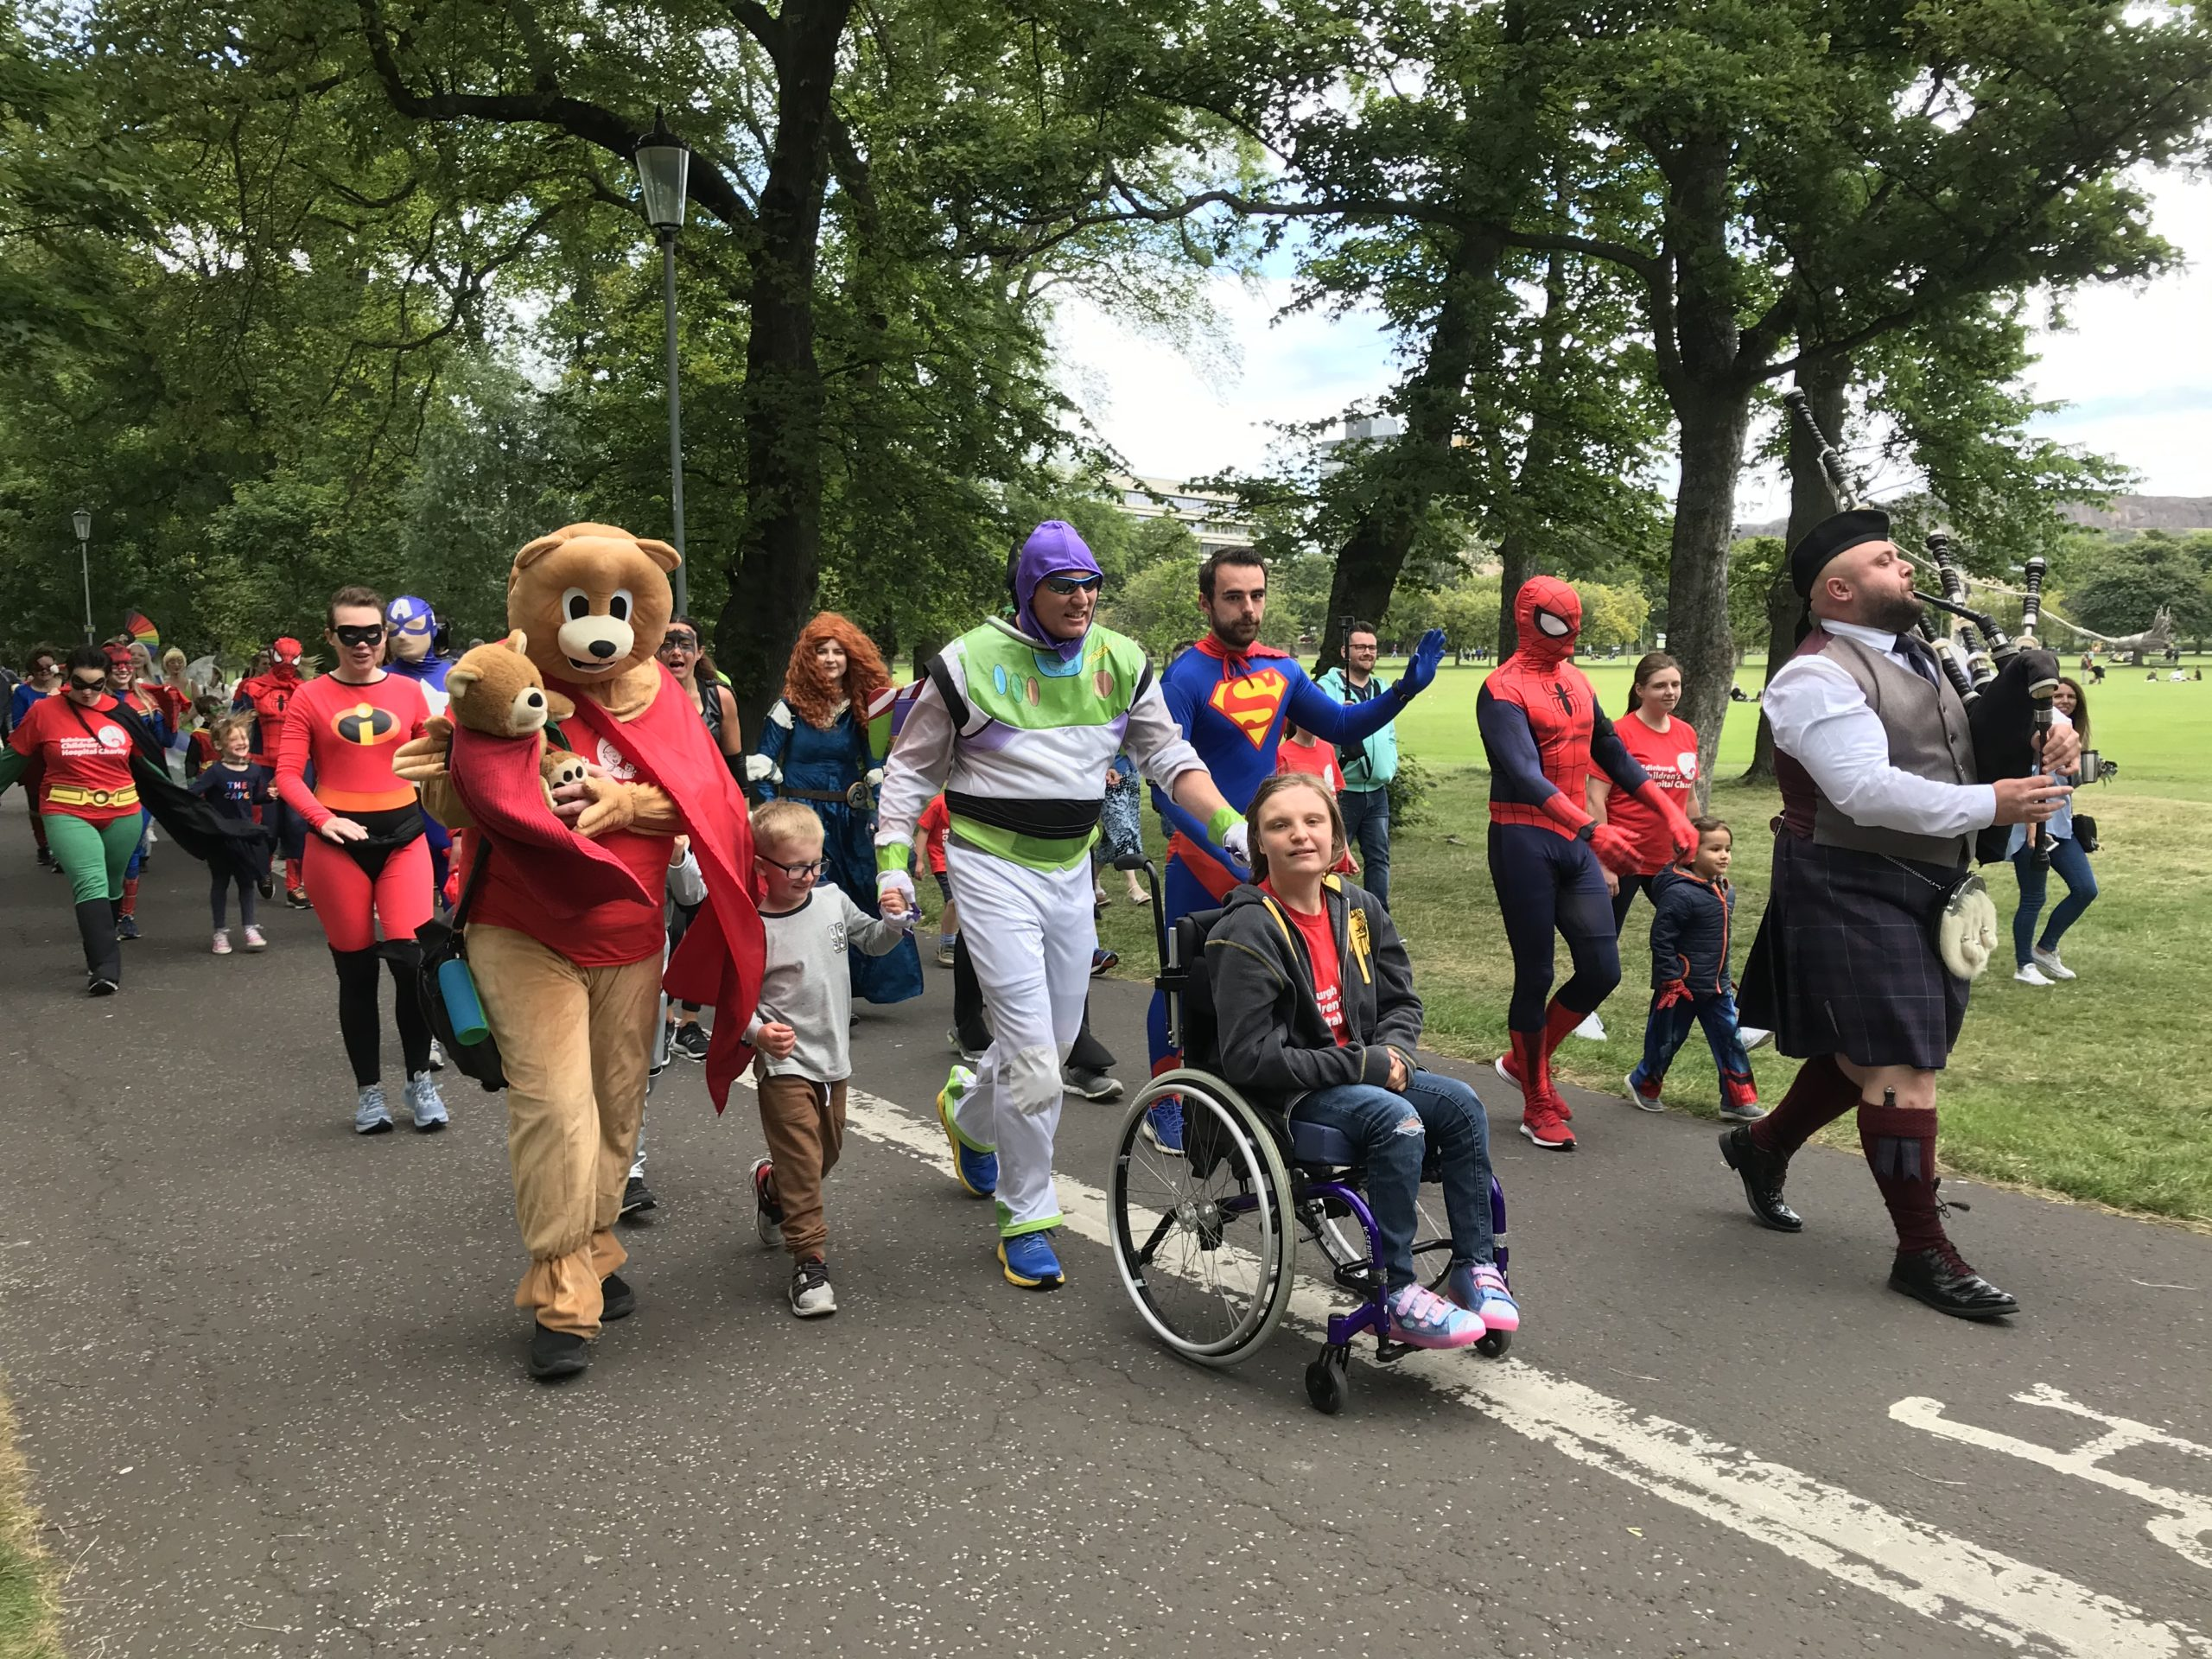 The Fife superheroes are piped in through the Meadows before arriving at the Sick Kids Hospital.